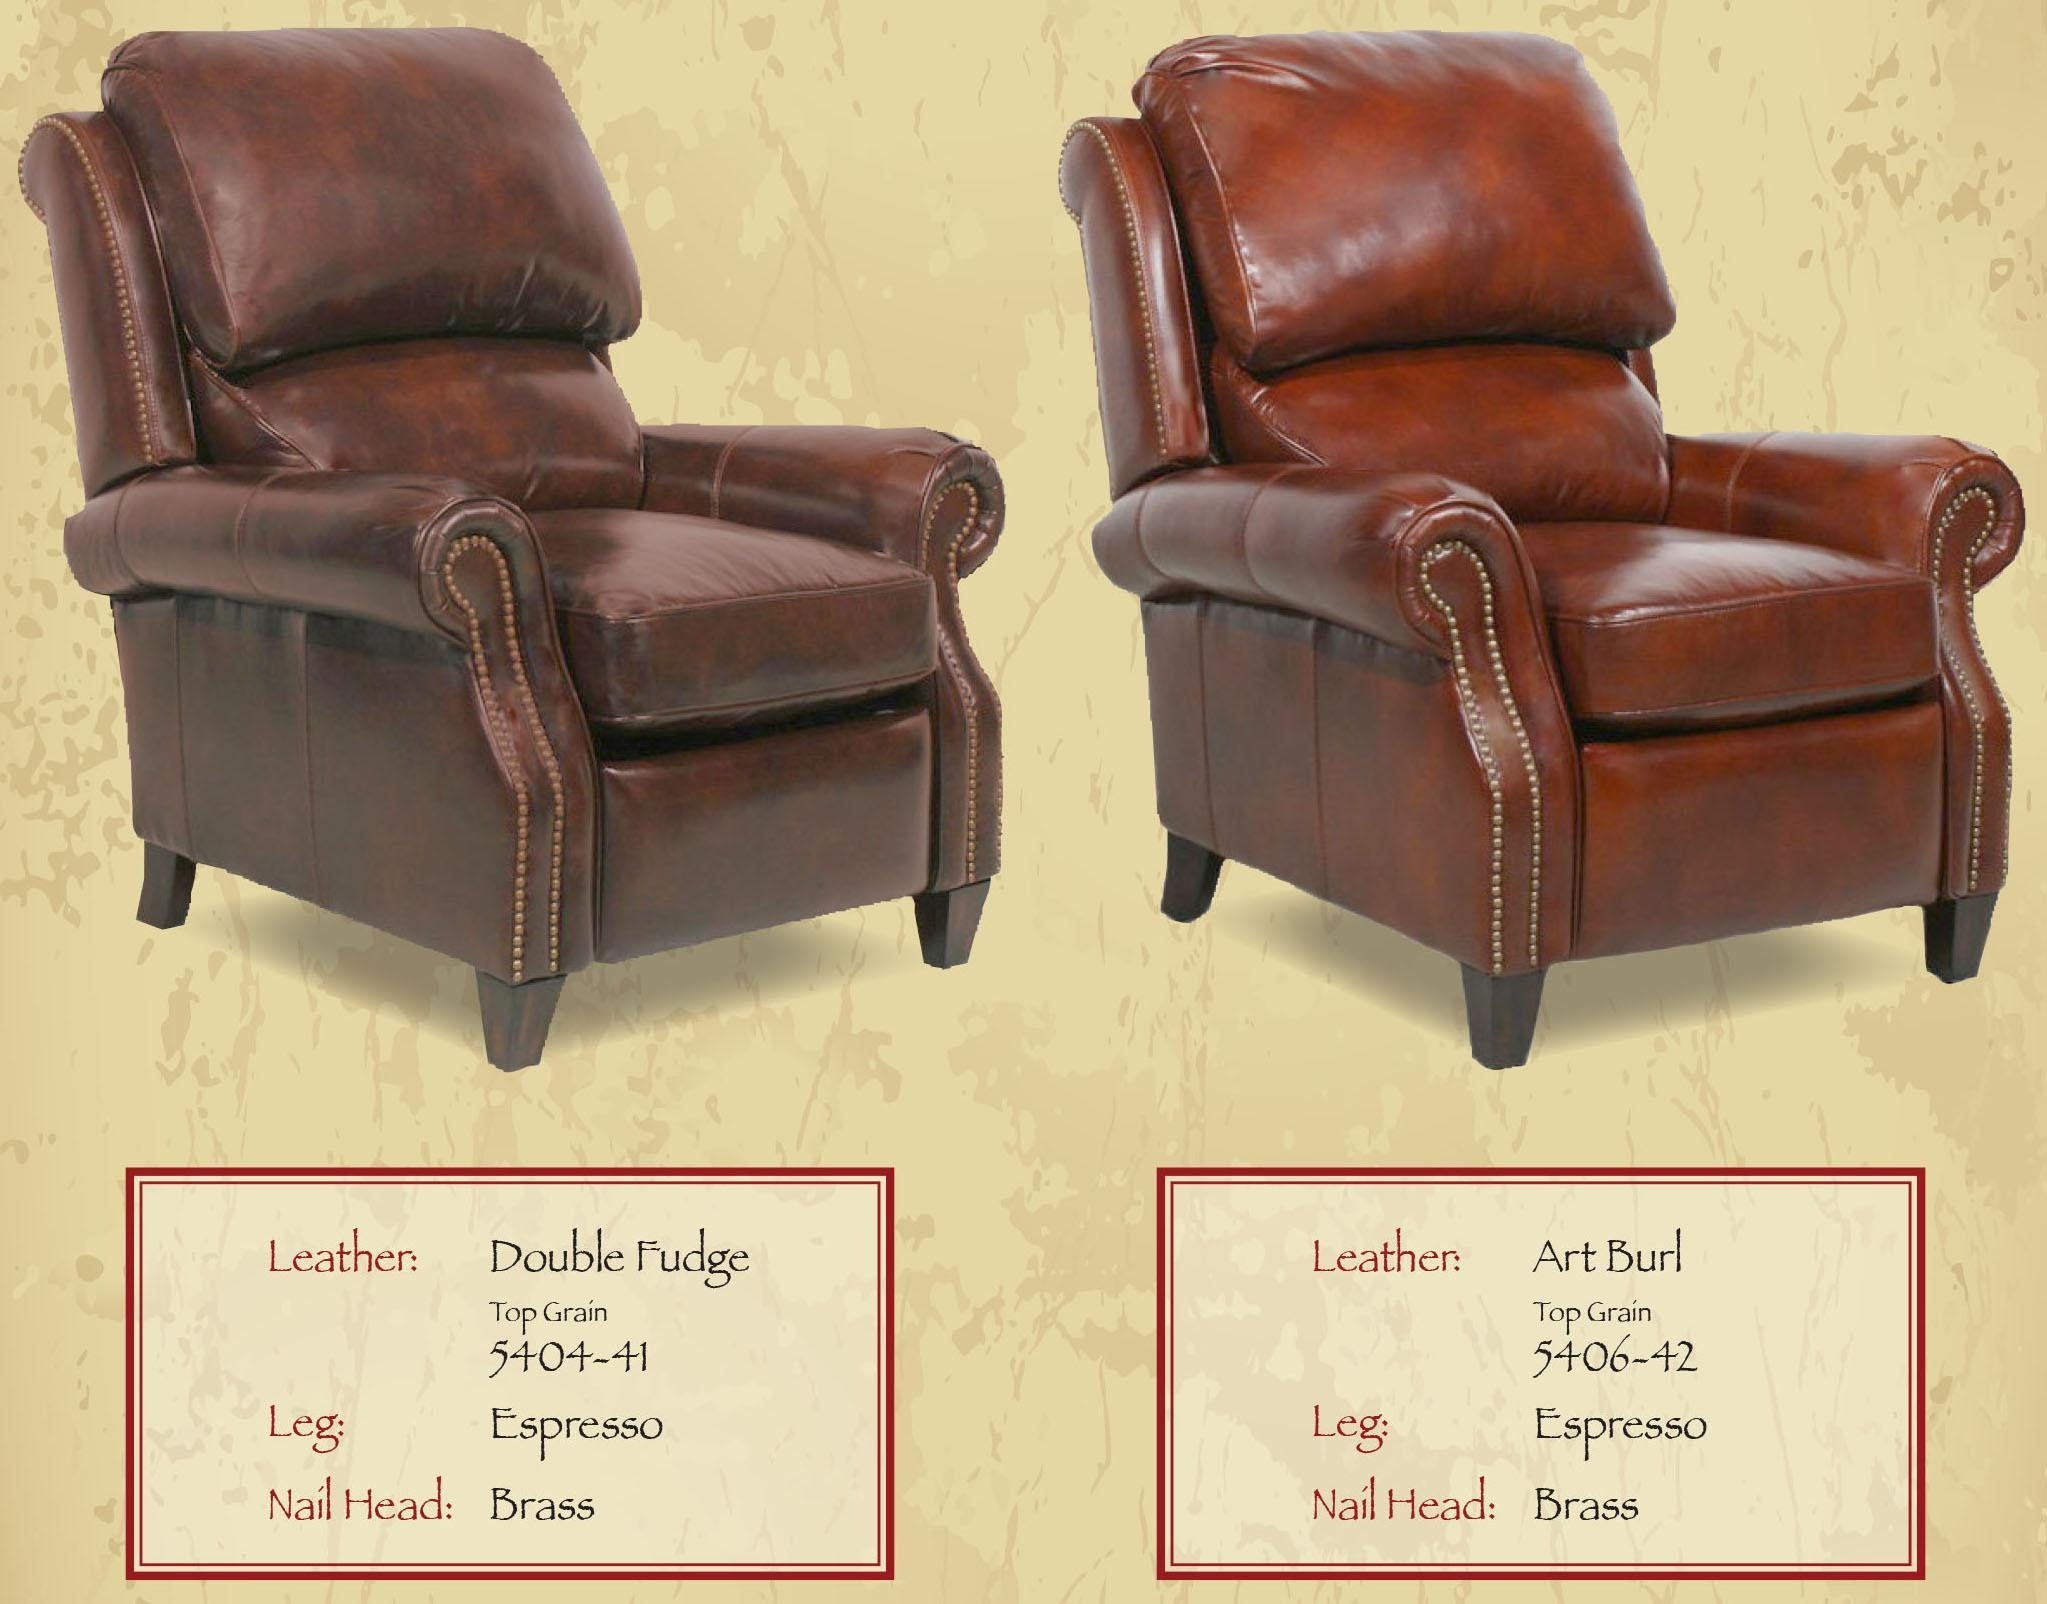 Barcalounger Churchill Ii Recliner Chair – Leather Recliner Chair In Barcalounger Sofas (Image 3 of 20)